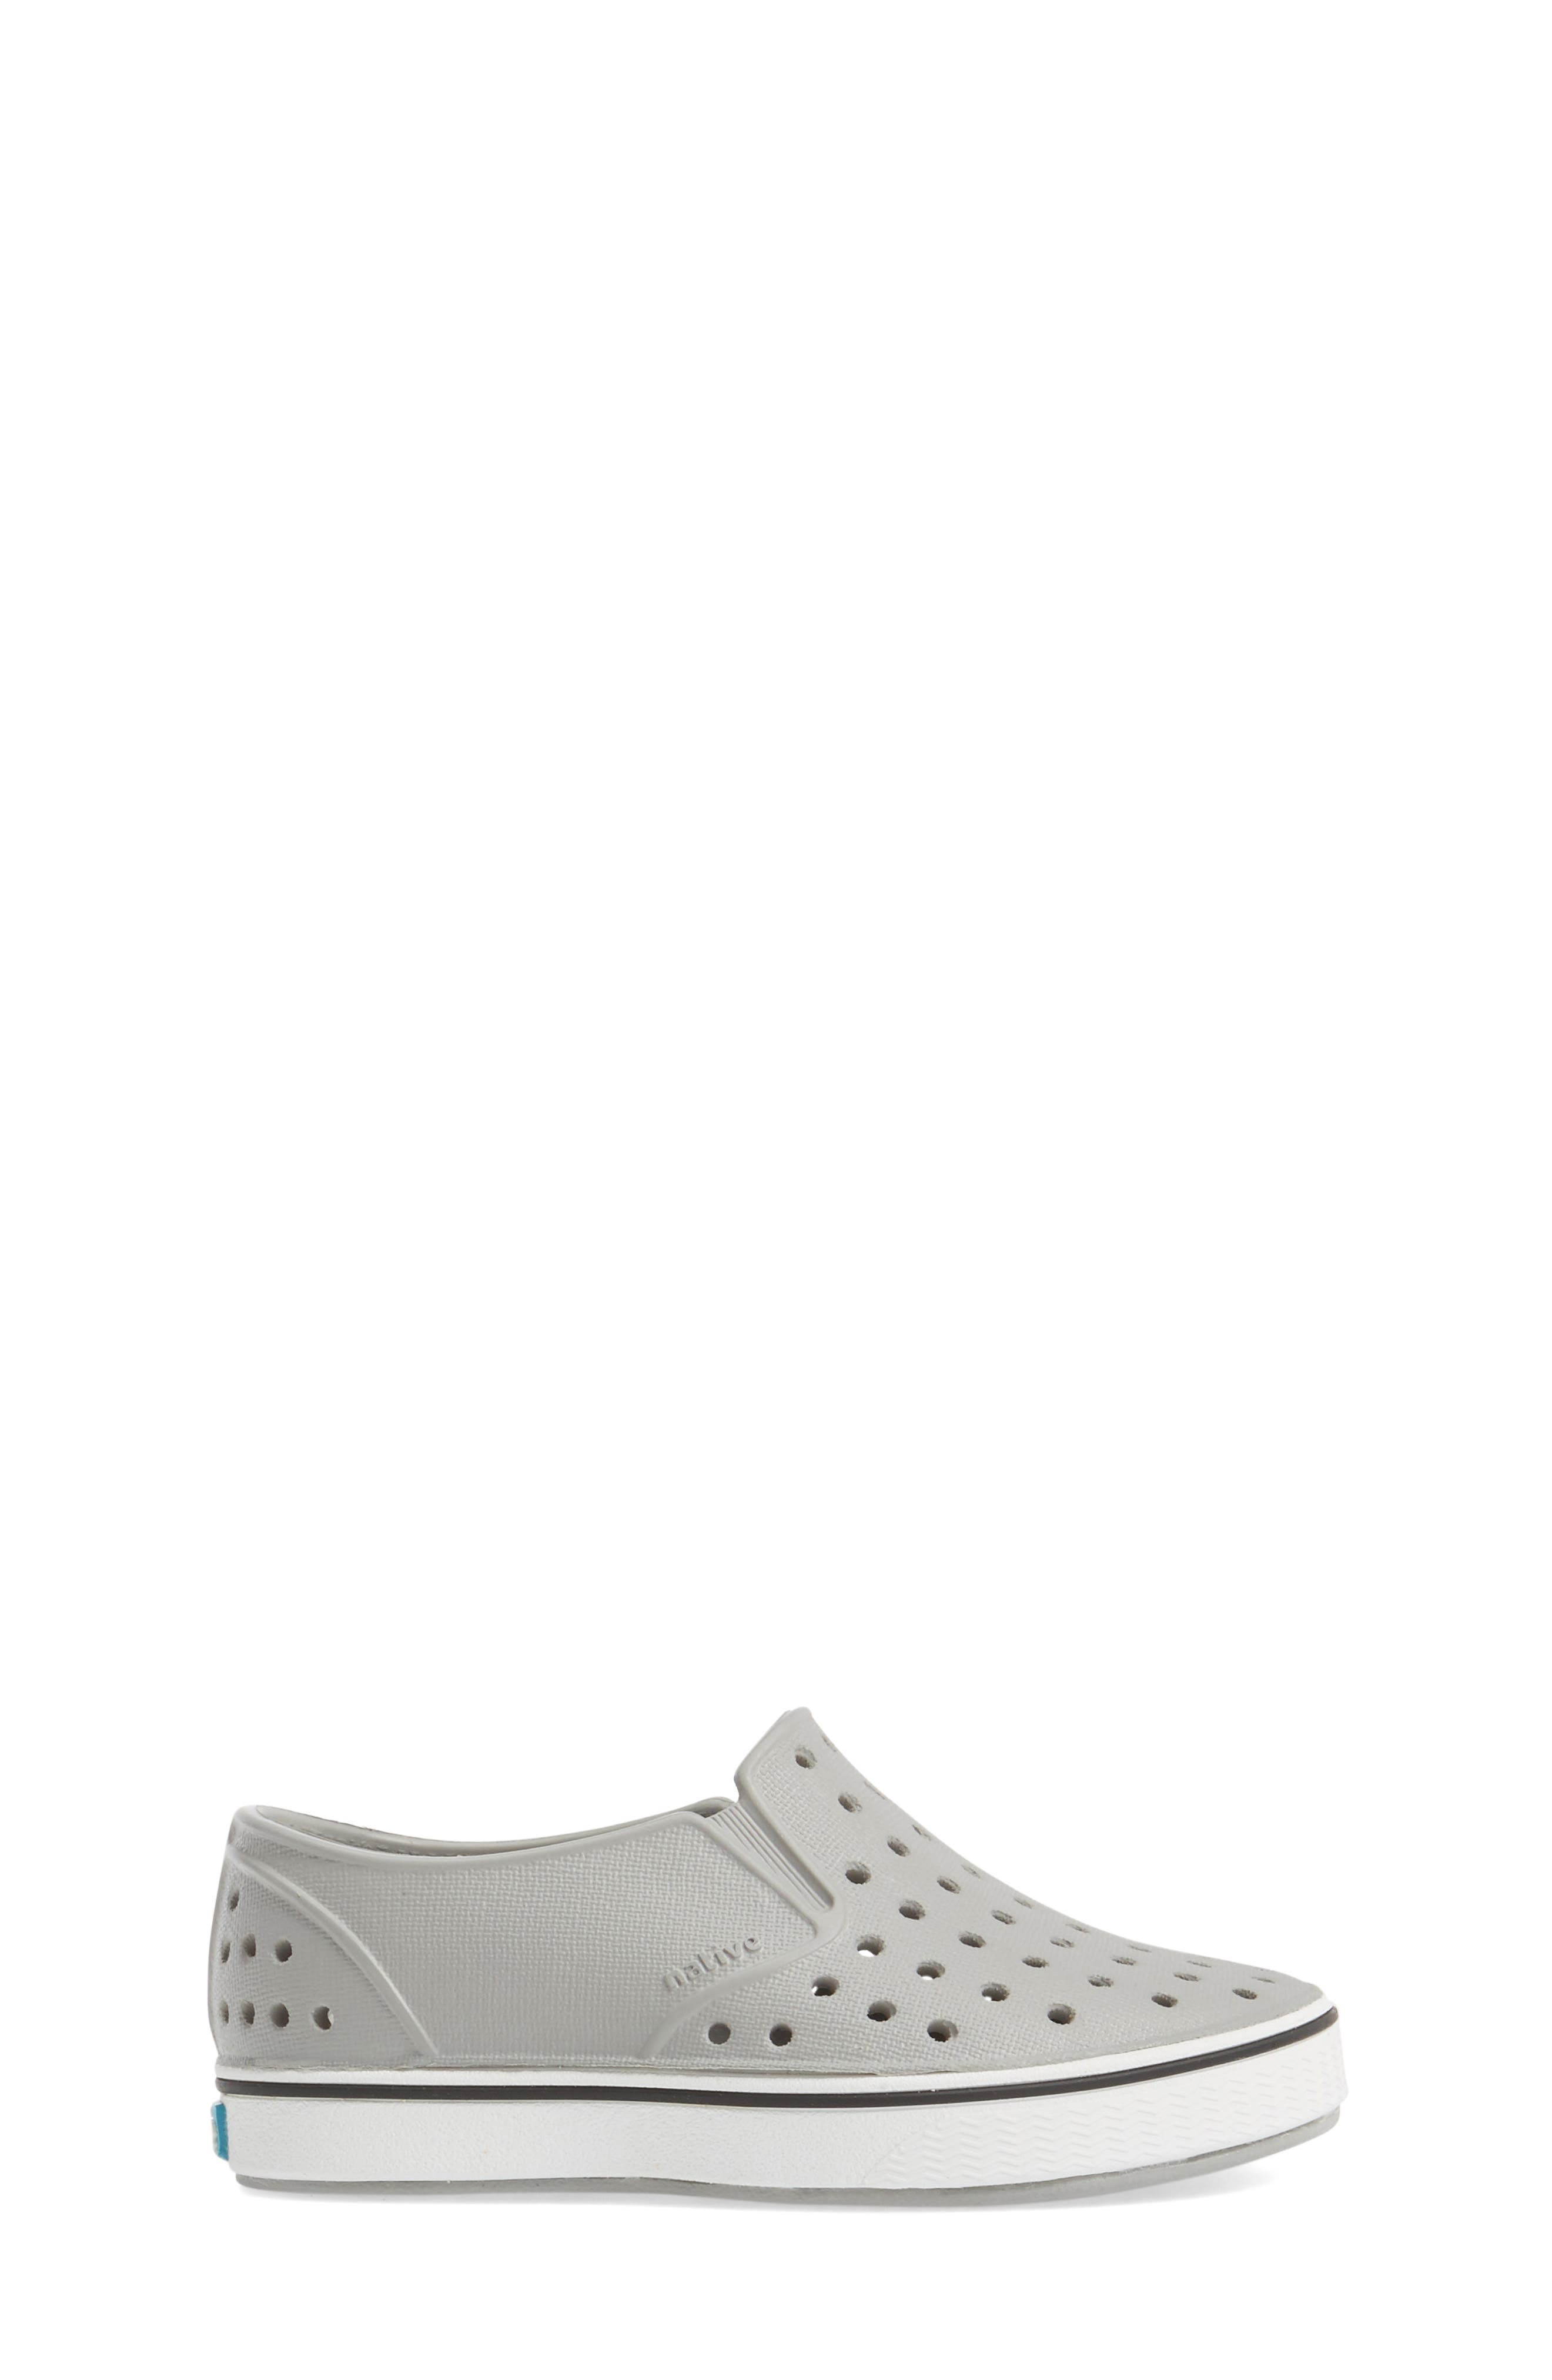 NATIVE SHOES, Miles Water Friendly Slip-On Vegan Sneaker, Alternate thumbnail 3, color, PIGEON GREY/ SHELL WHITE